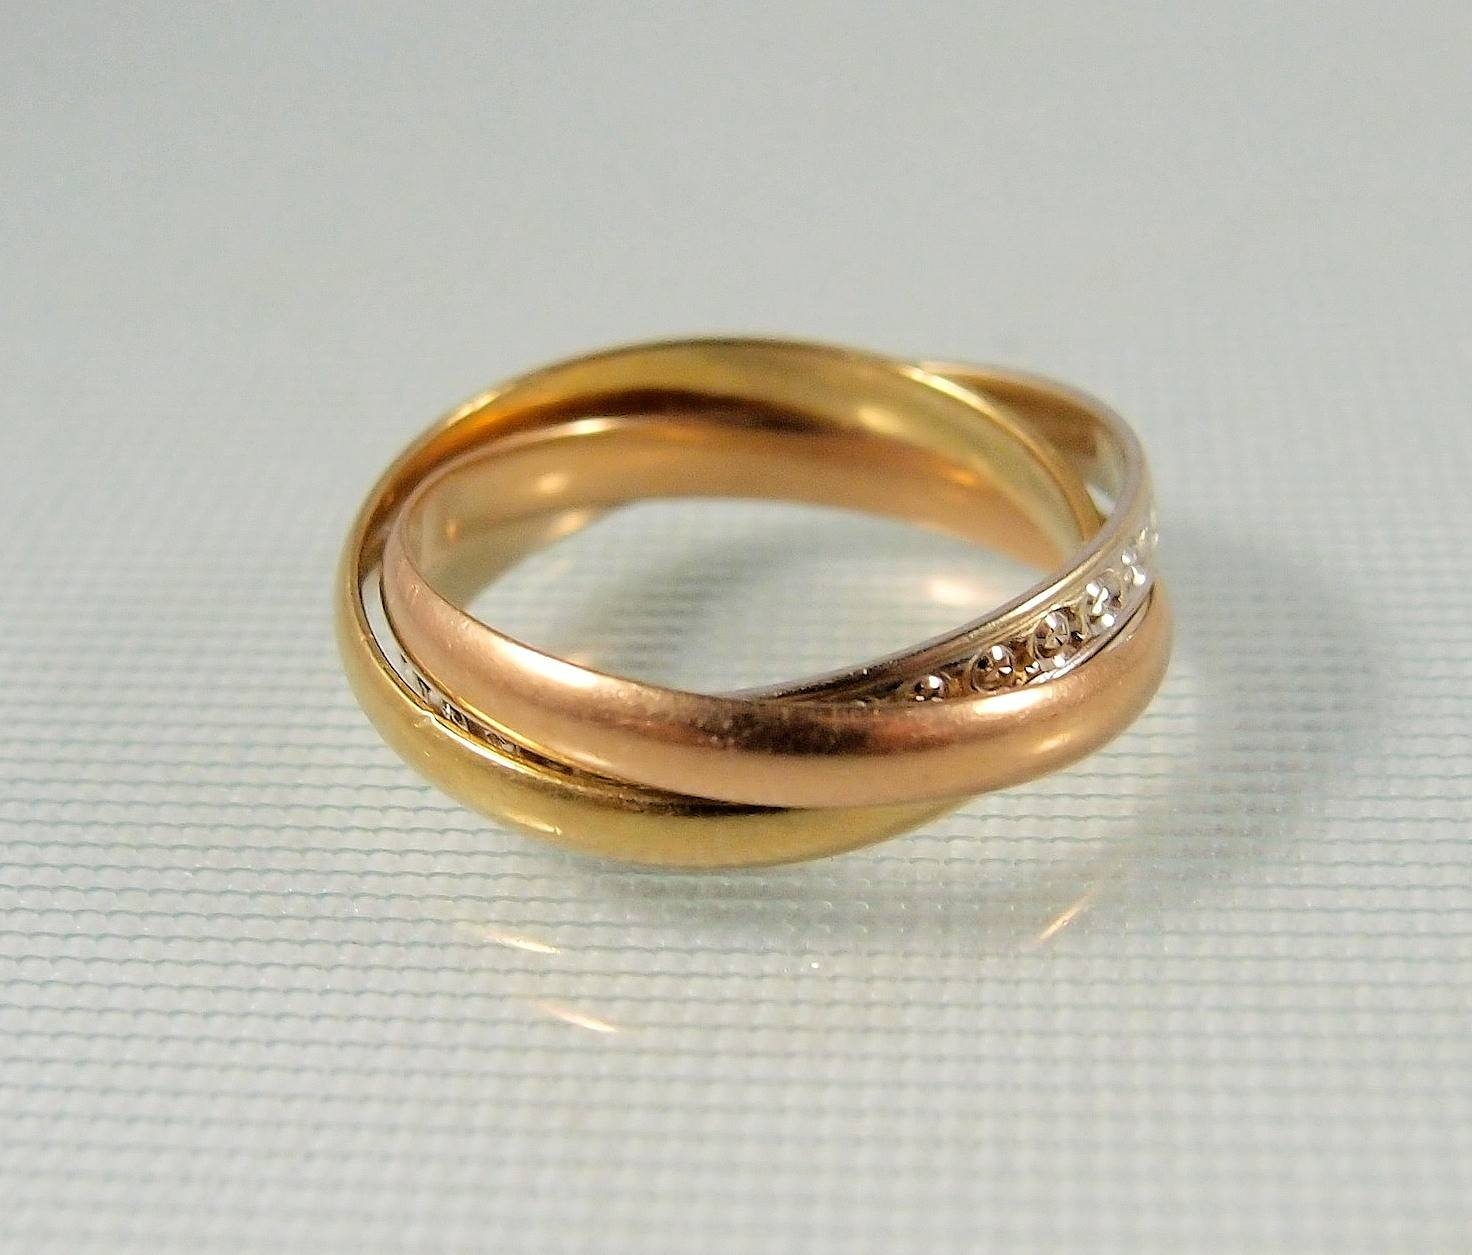 18k Solid Gold Trinity Wedding Ring Vintage Rolling Wedding Band With Interlocking Wedding Bands (View 10 of 15)